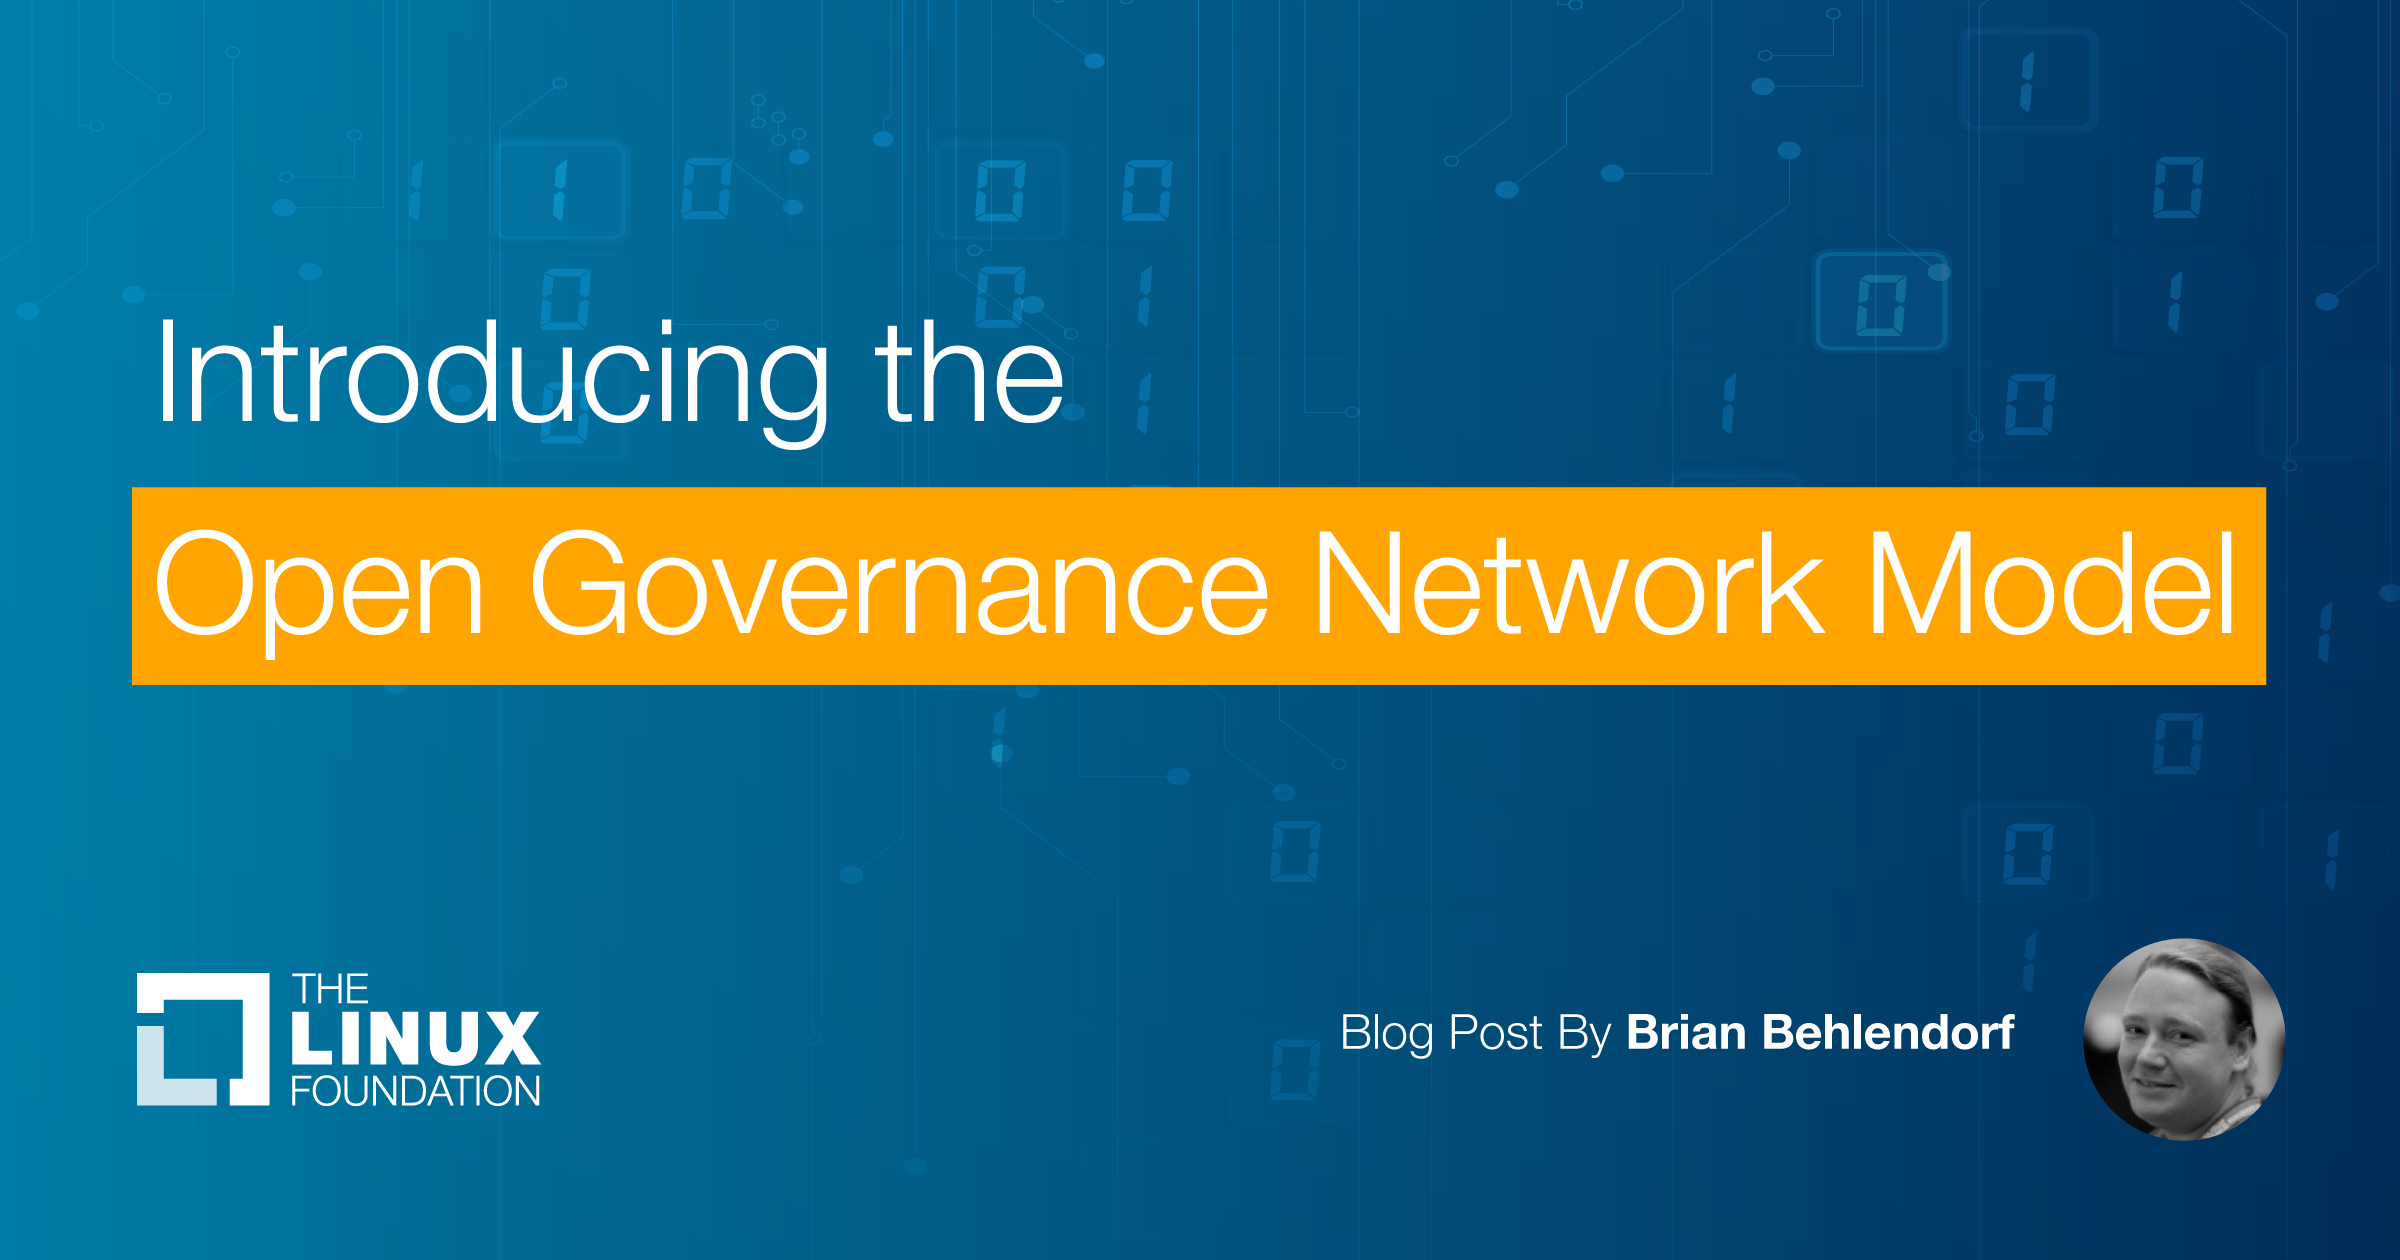 Introducing the Open Governance Network Model